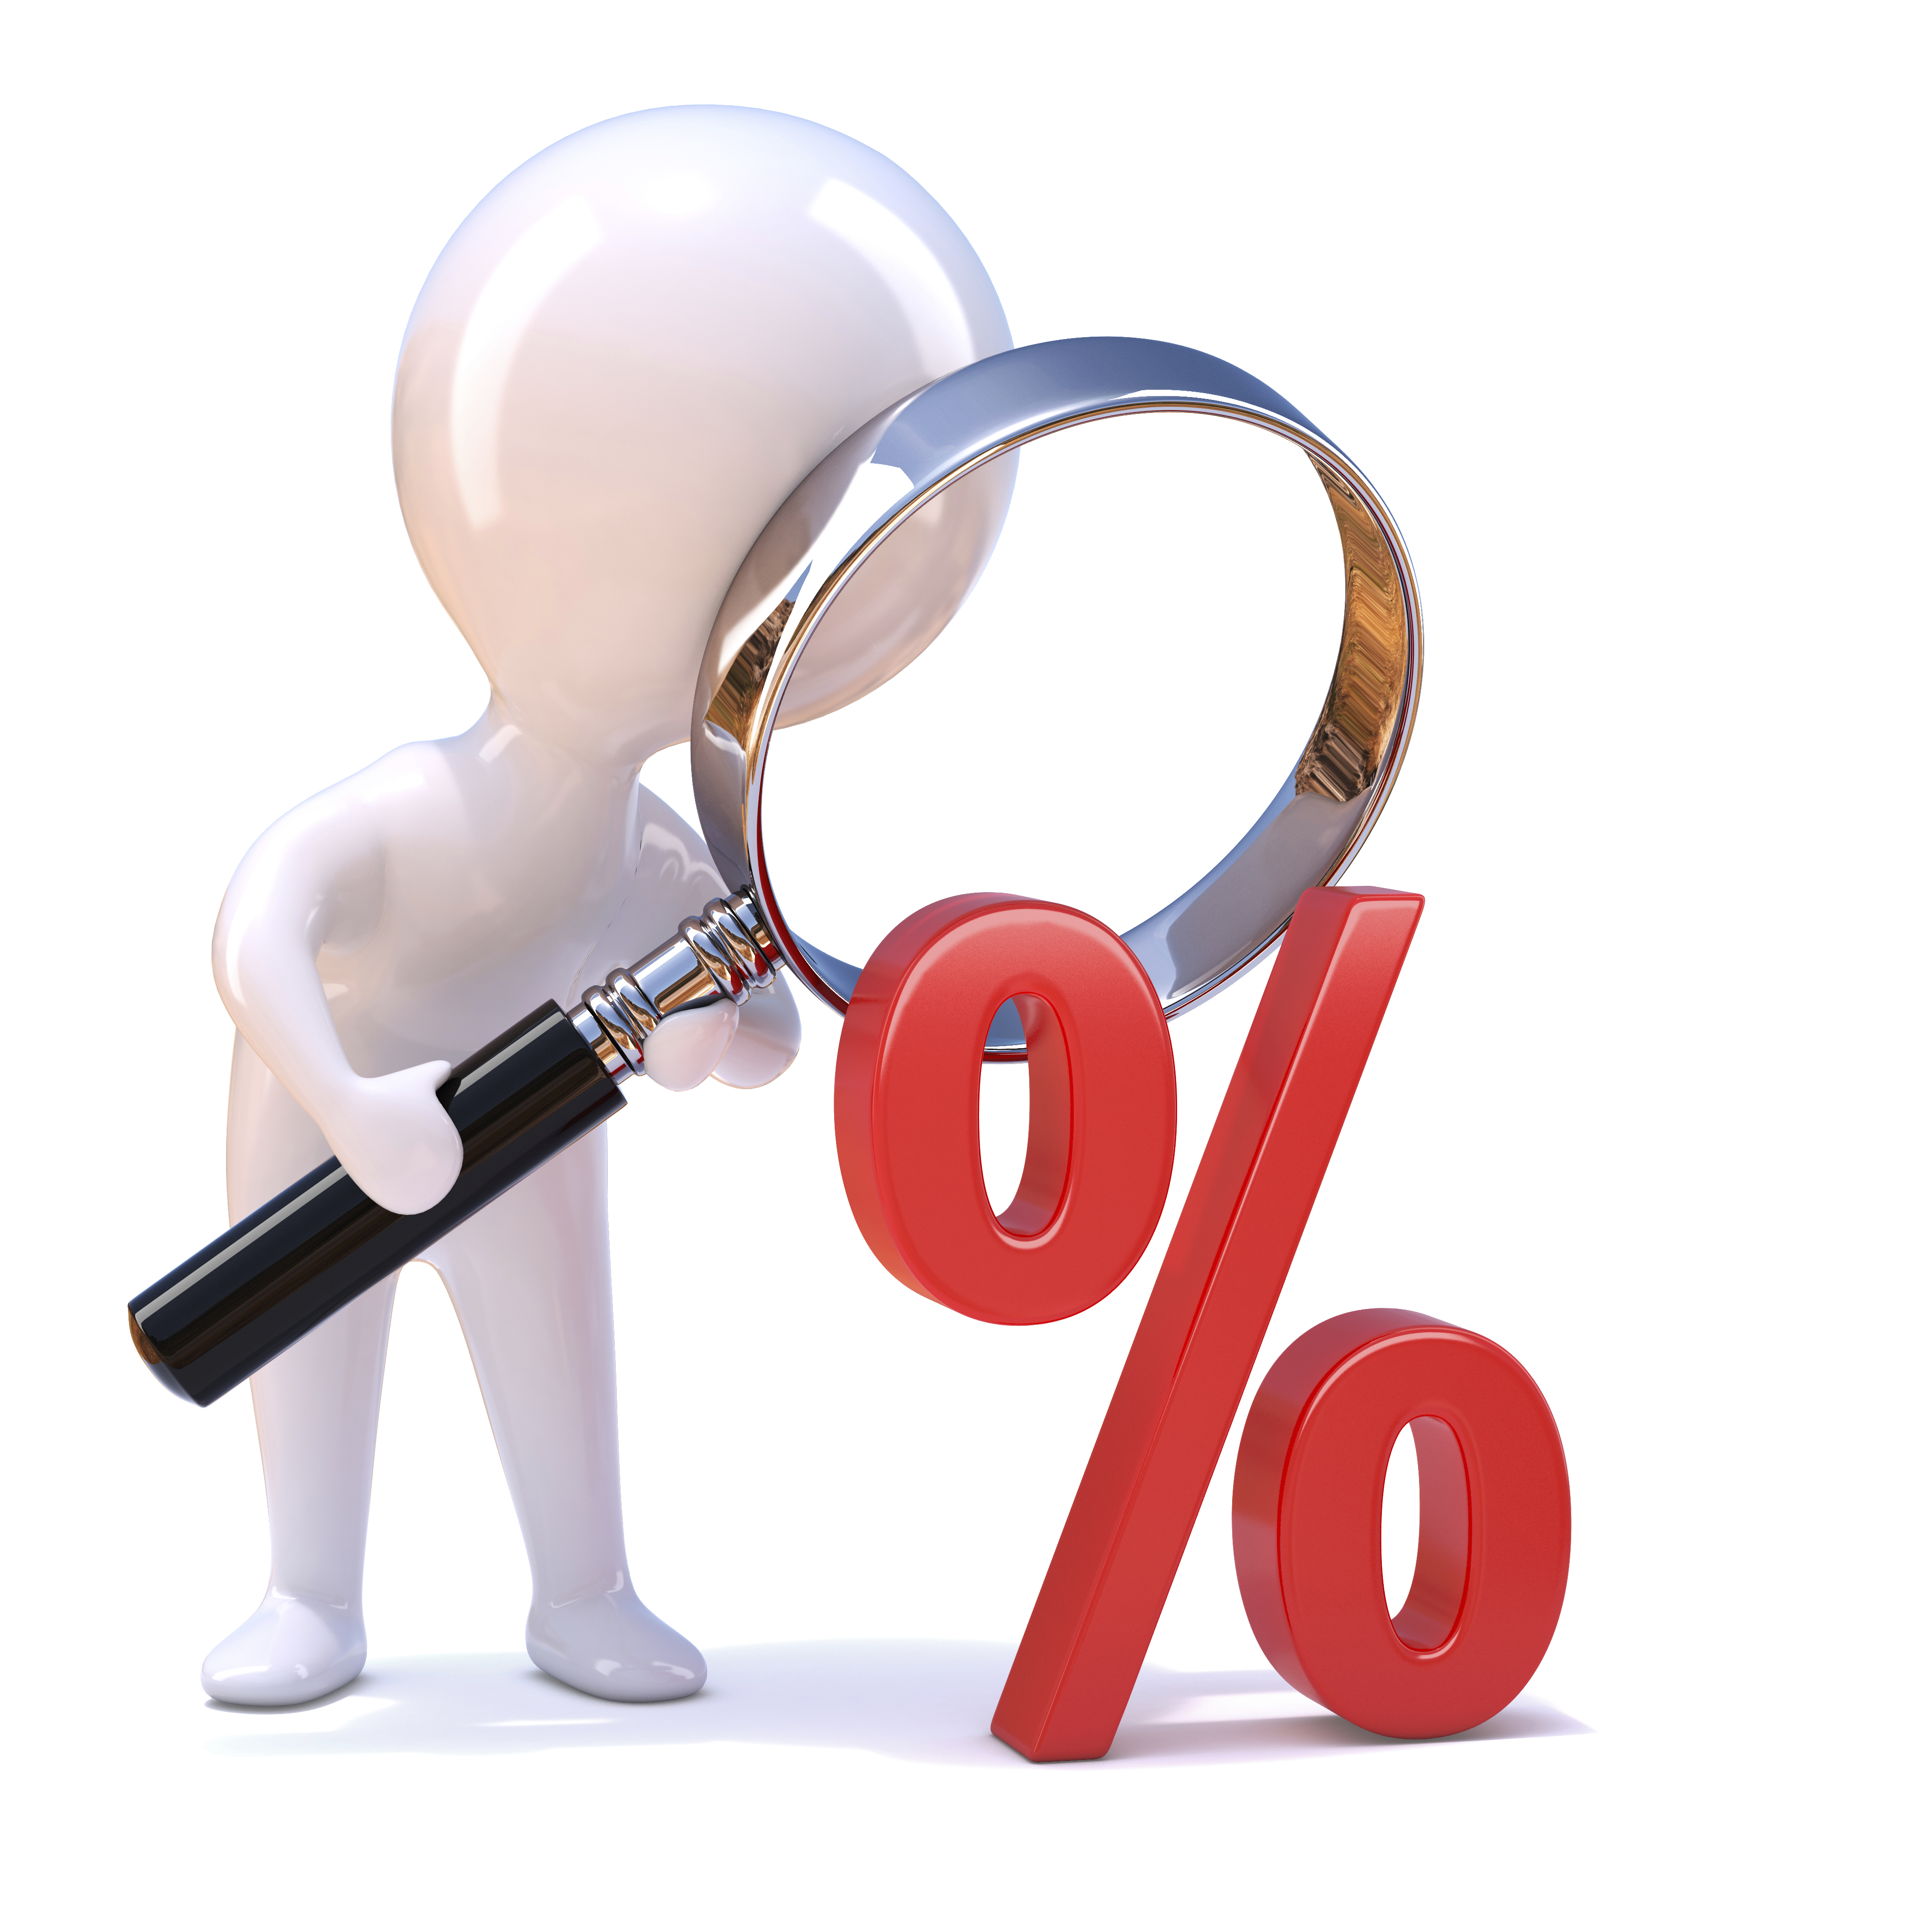 Was the Base Rate increase an overreaction?